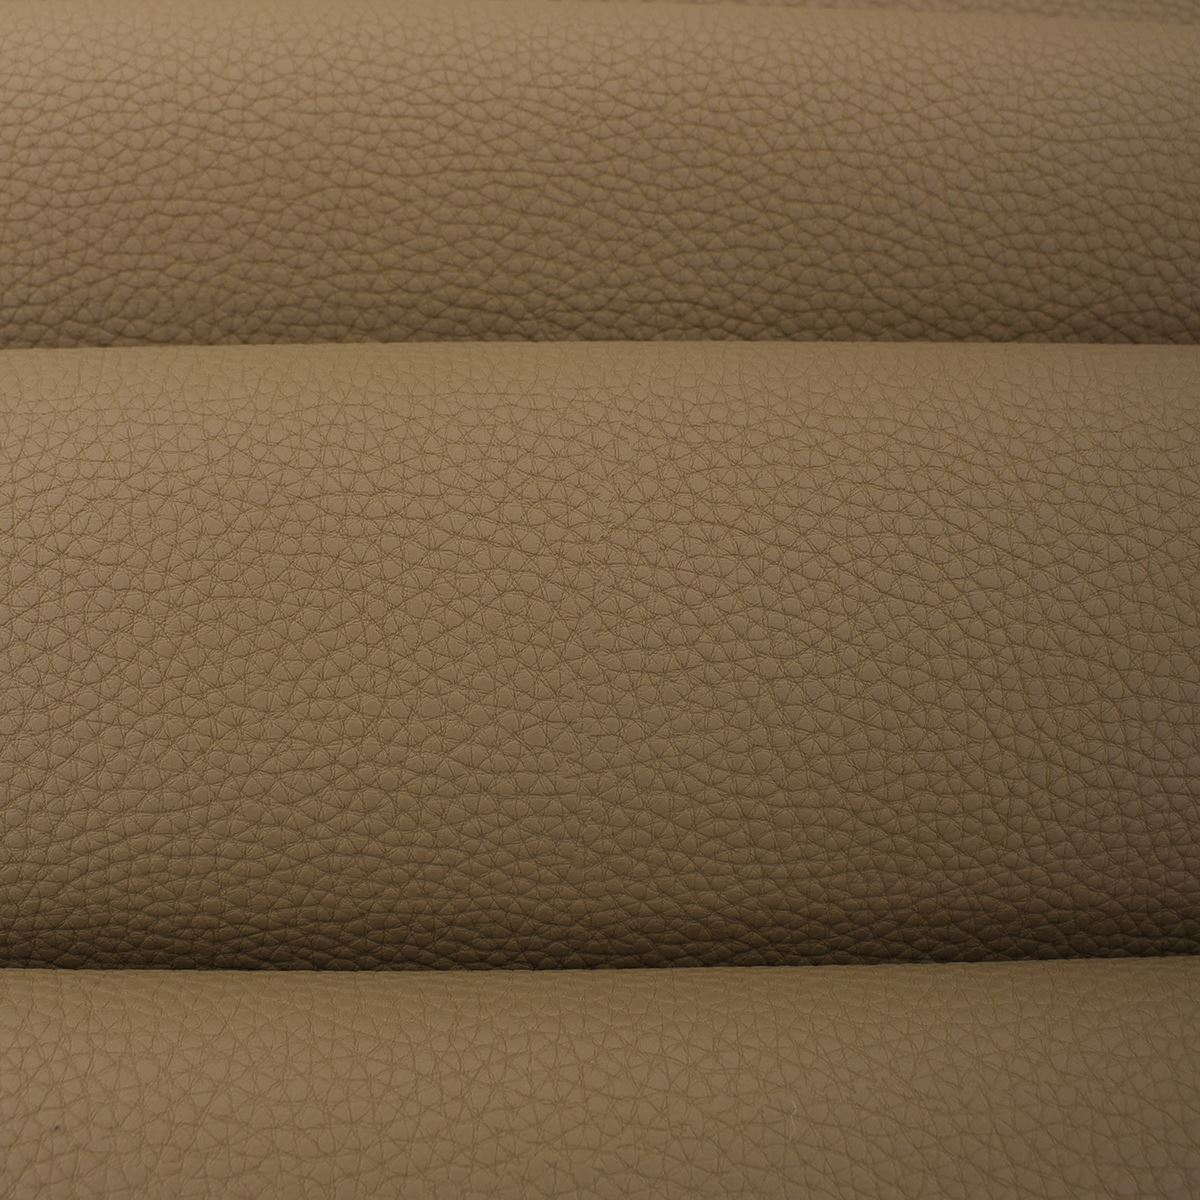 Nova-Faux-Leatherette-Artificial-Leather-Heavy-Grain-Upholstery-Vehicle-Fabric thumbnail 28